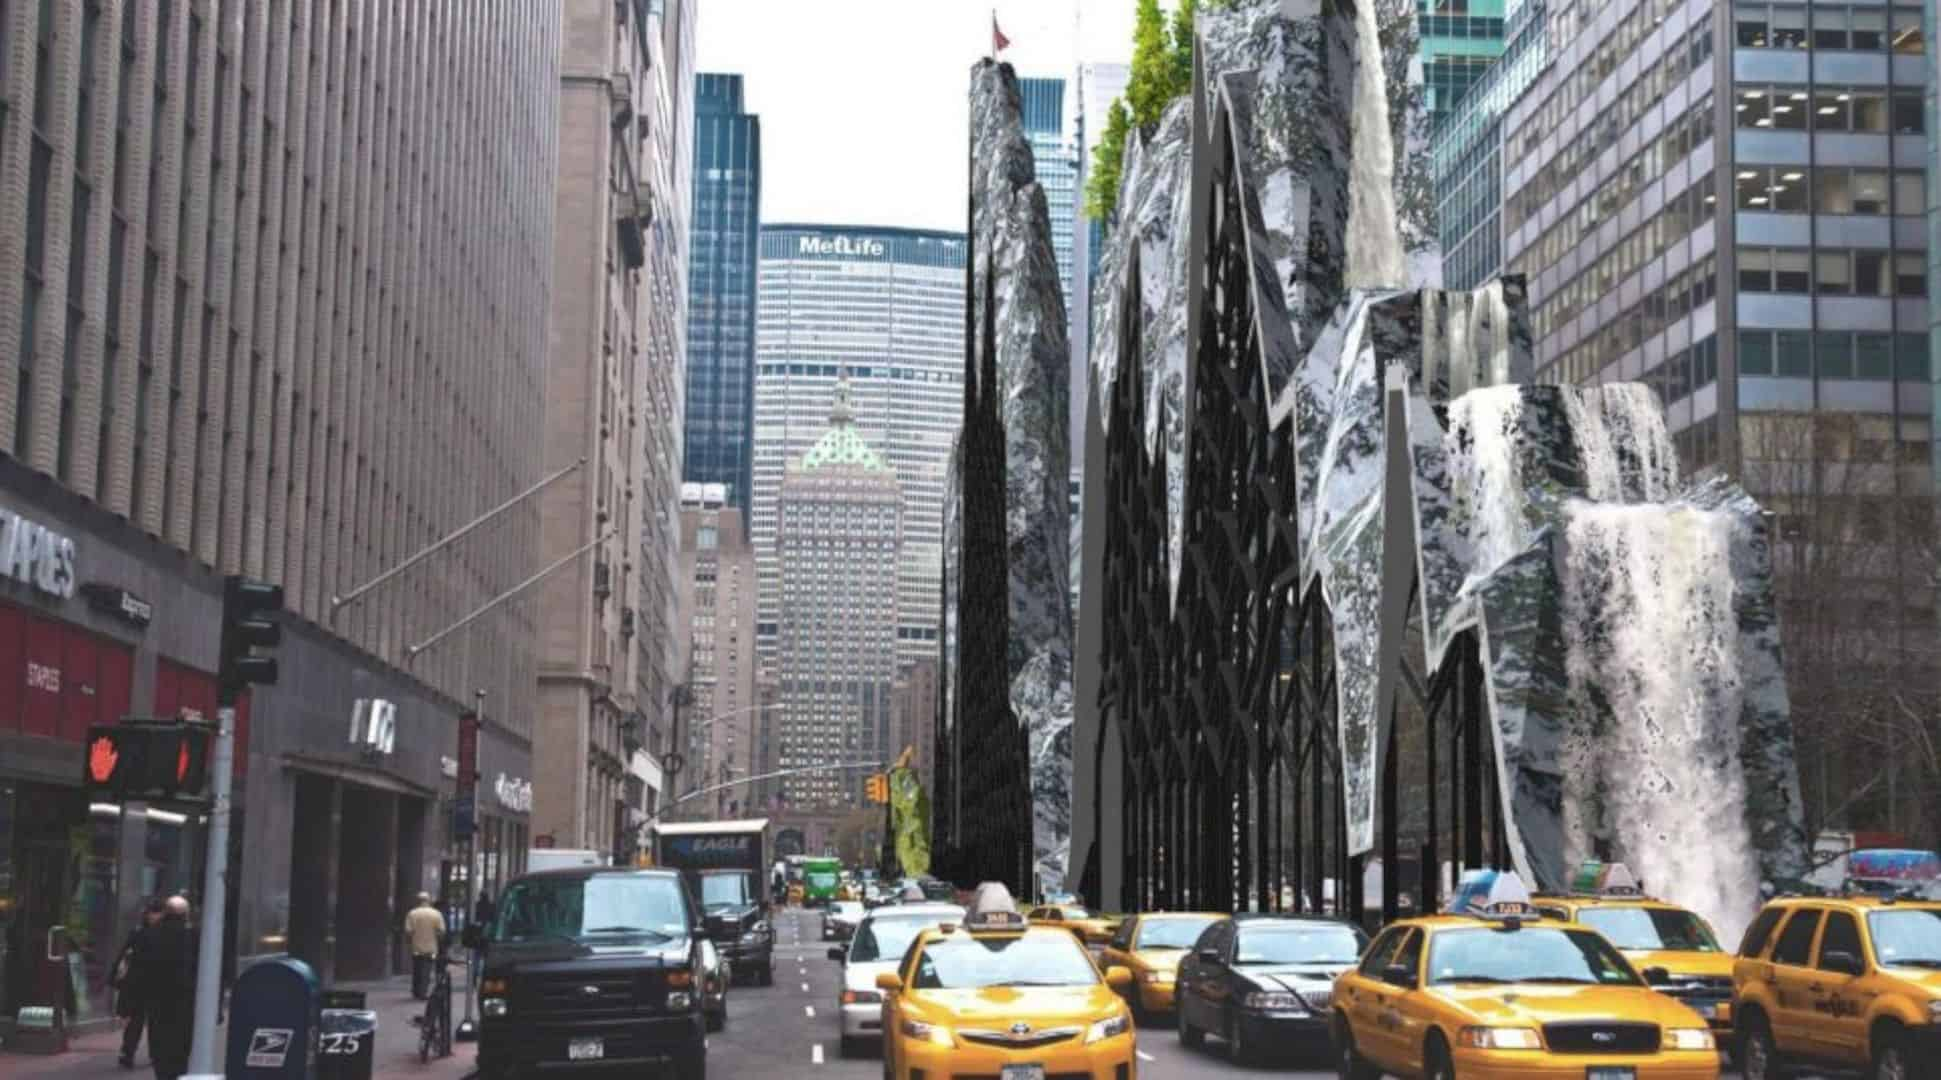 Creative Yet Extreme Ideas for Park Avenue's Central Median